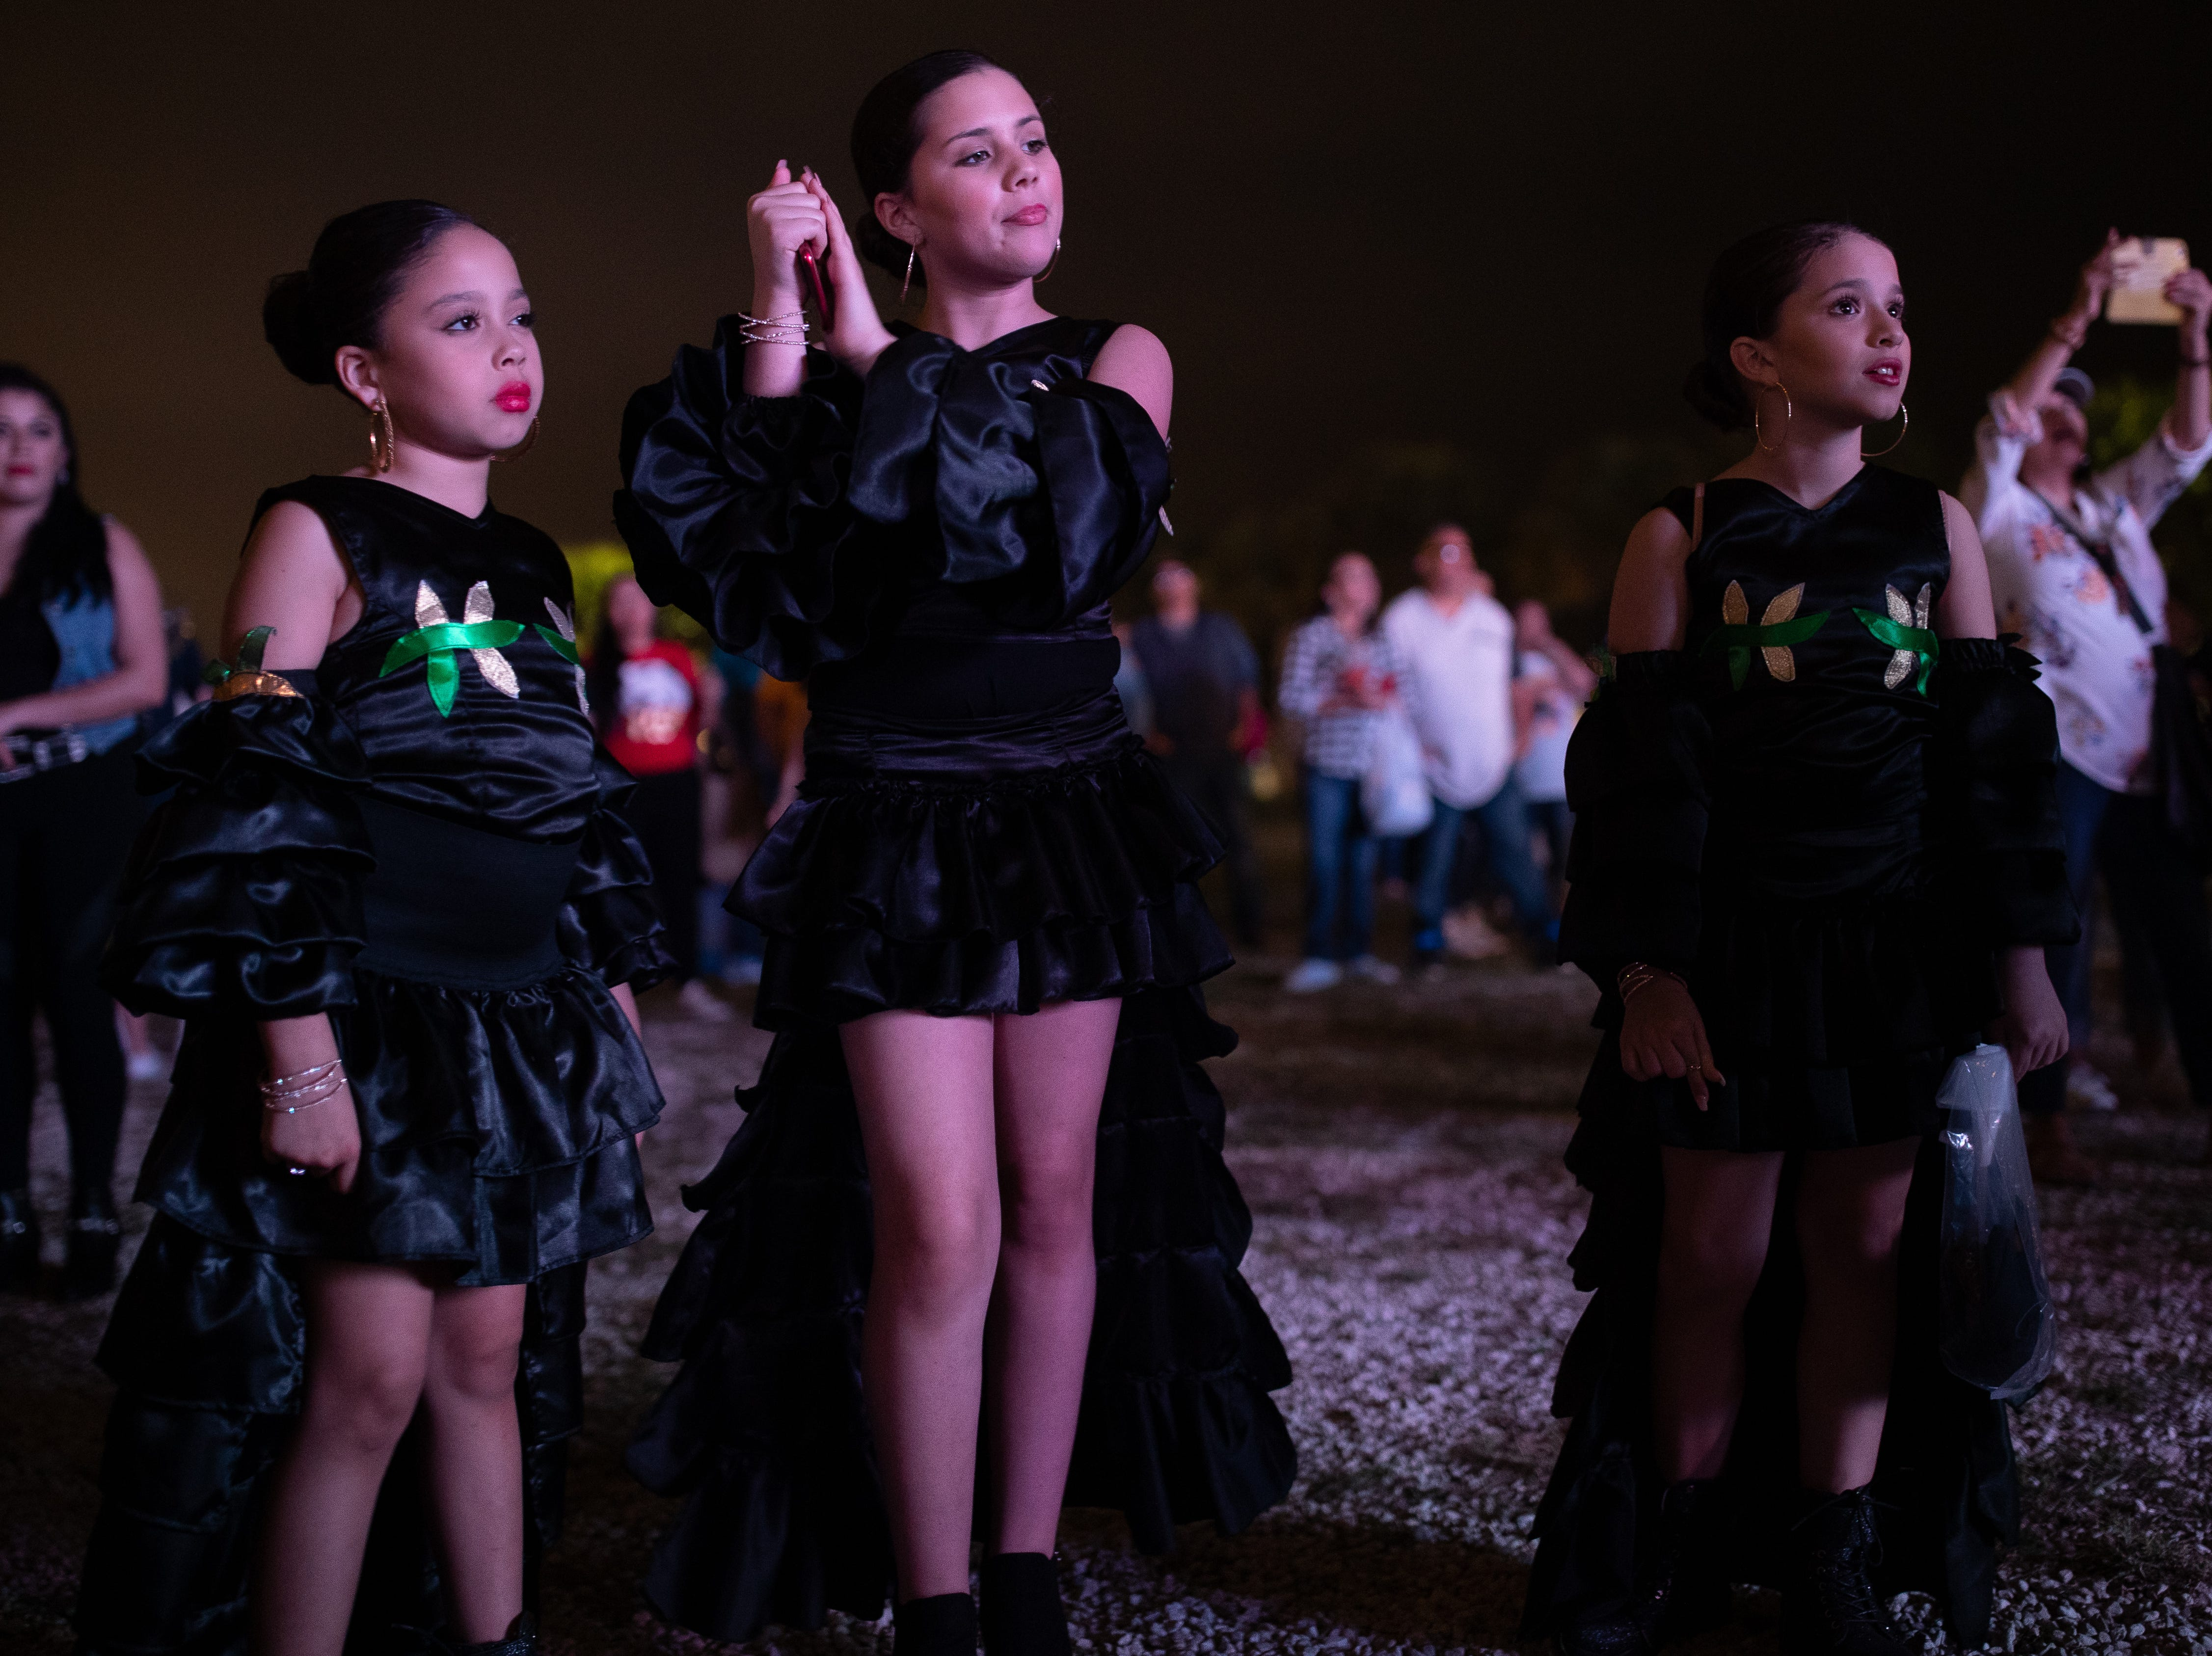 Jadasa Avalos, Jaylnn Avalos and Jahella Avalos of Maryland dance during Gilbert Velasquez and Friends set at the first day of Fiesta de la Flor on Friday, April 12, 2019.